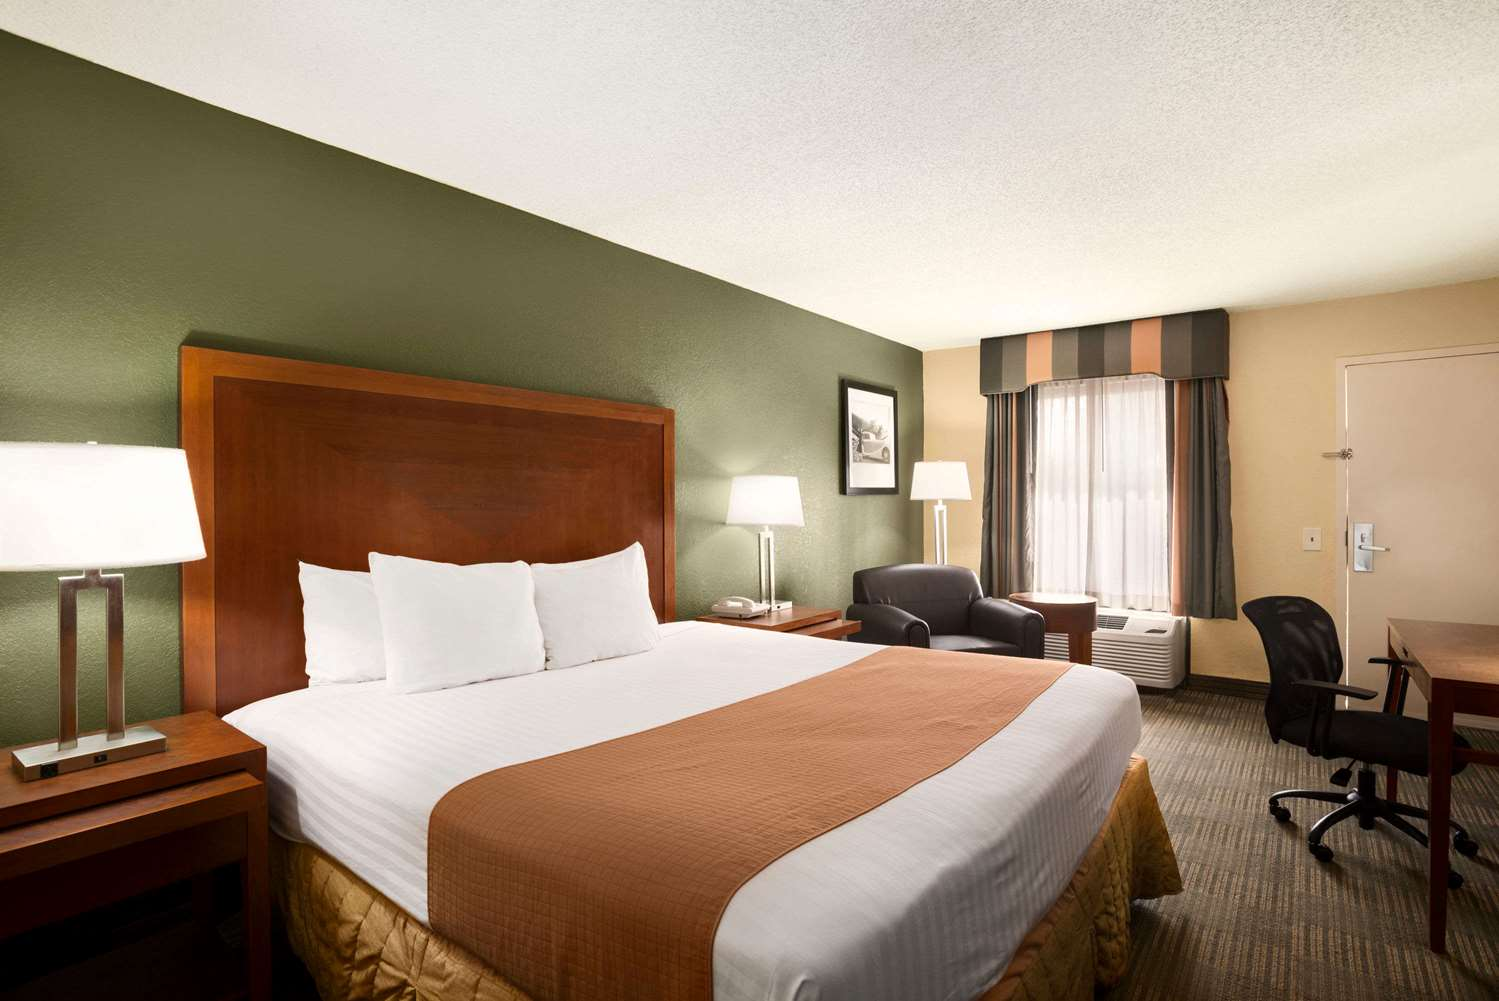 Days Inn Airport Jacksonville, FL - See Discounts